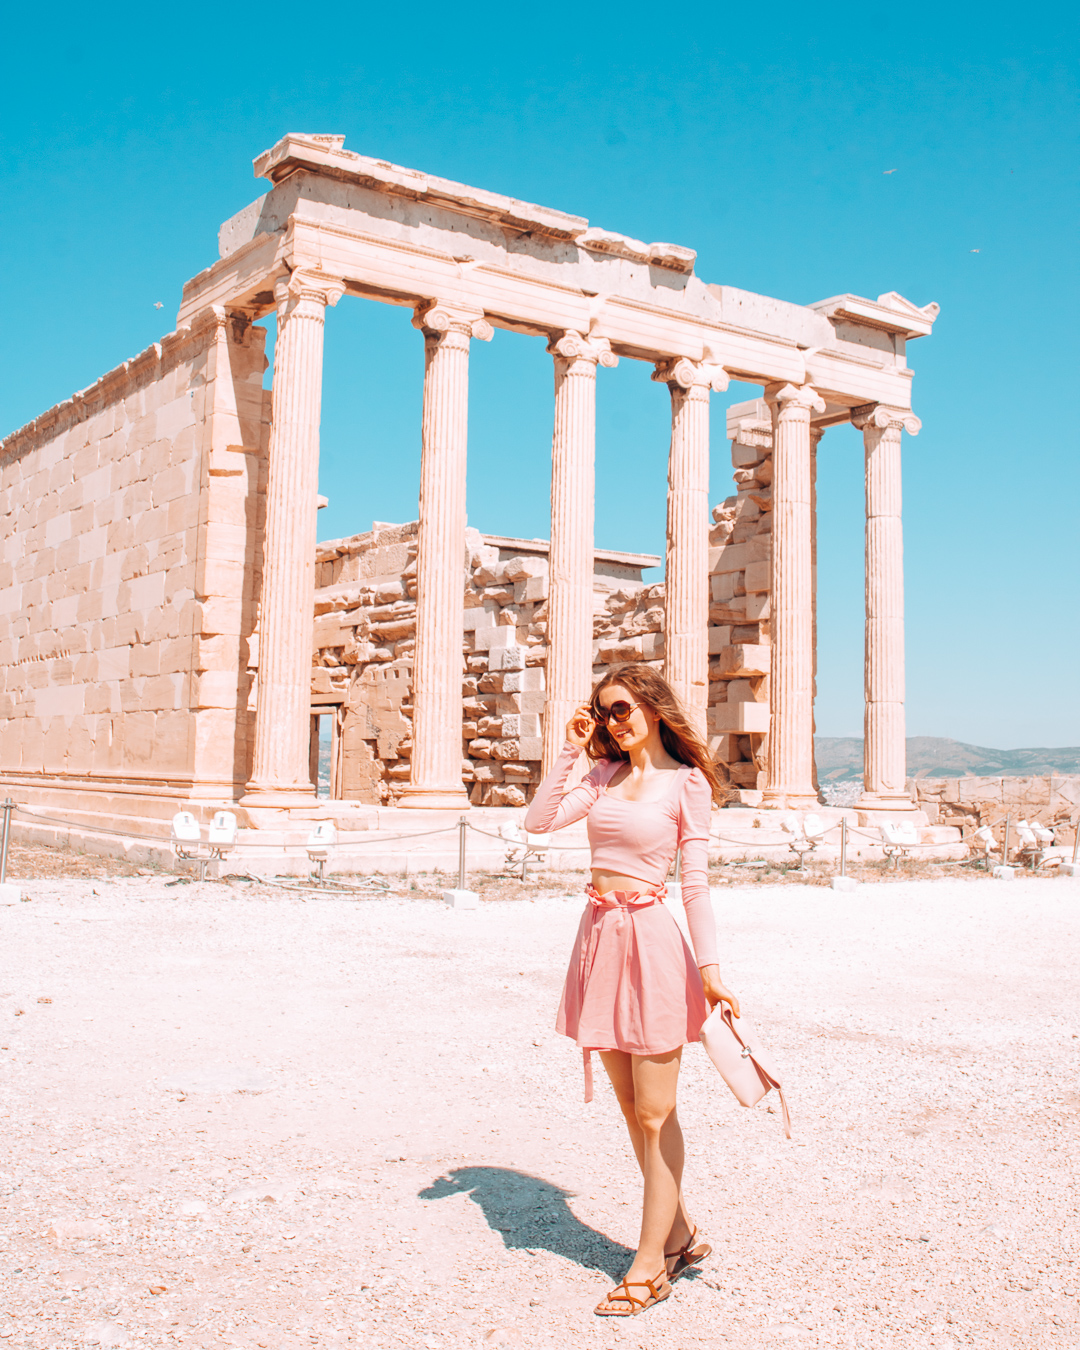 Girl with sunglasses at the Acropolis